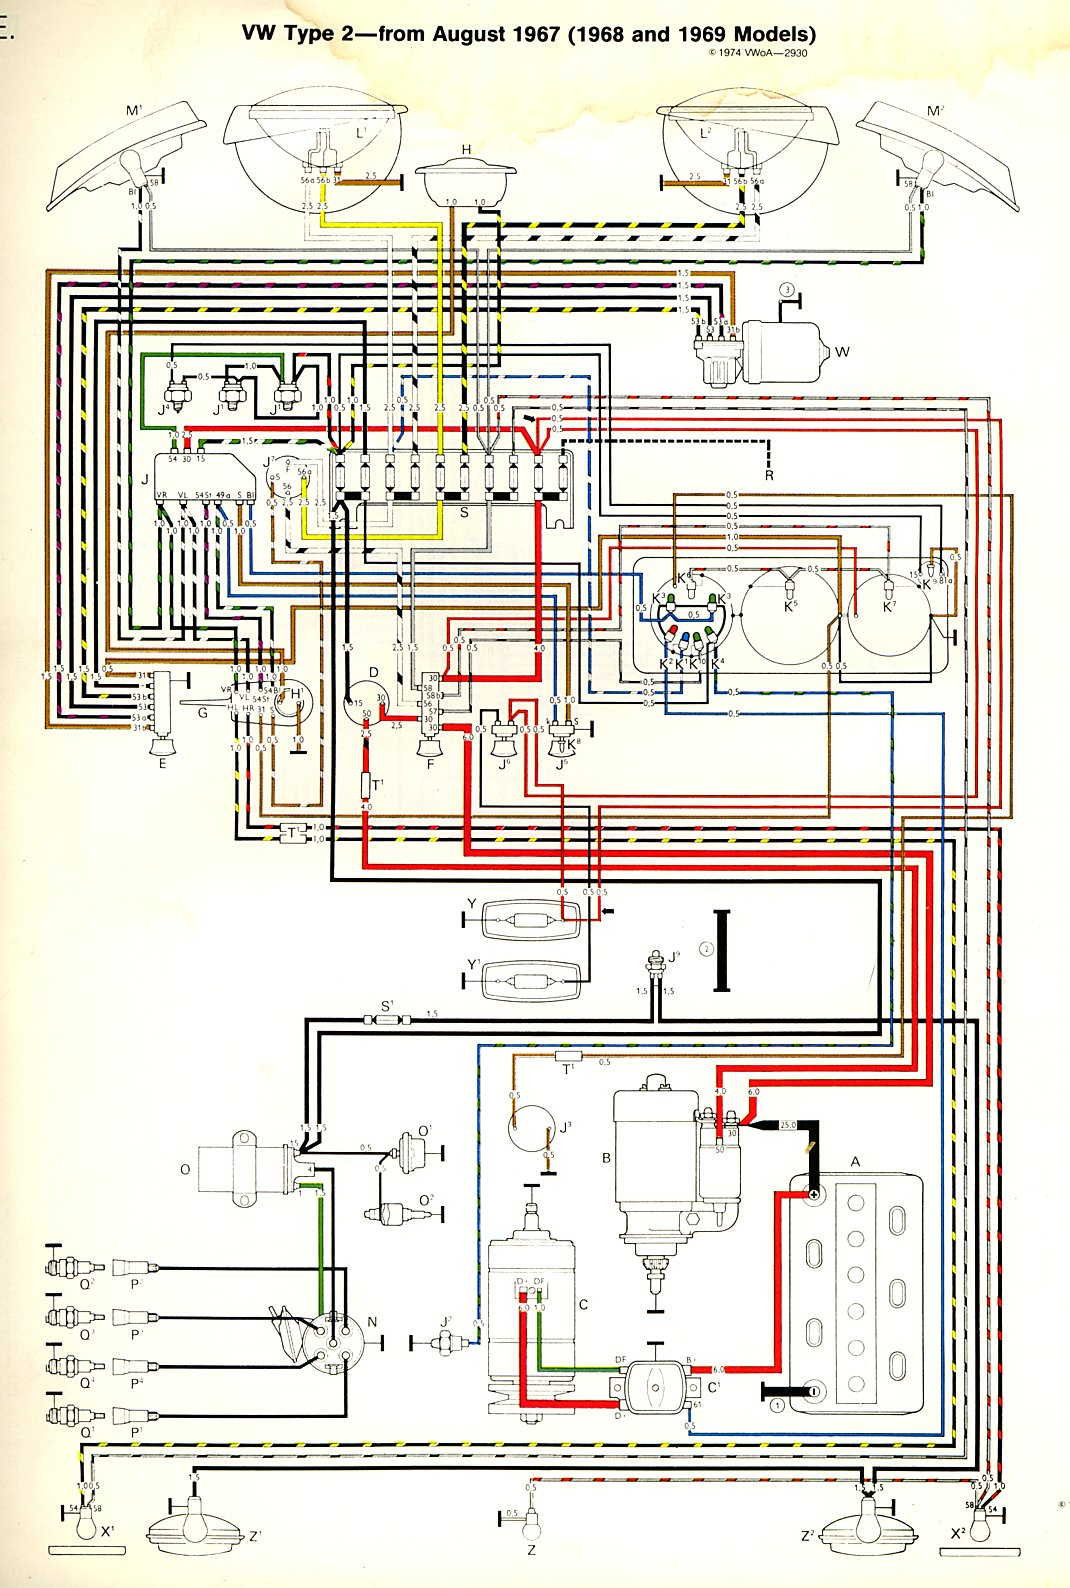 baybus_6869a 1968 69 bus wiring diagram thegoldenbug com 1963 vw wiring diagram at alyssarenee.co